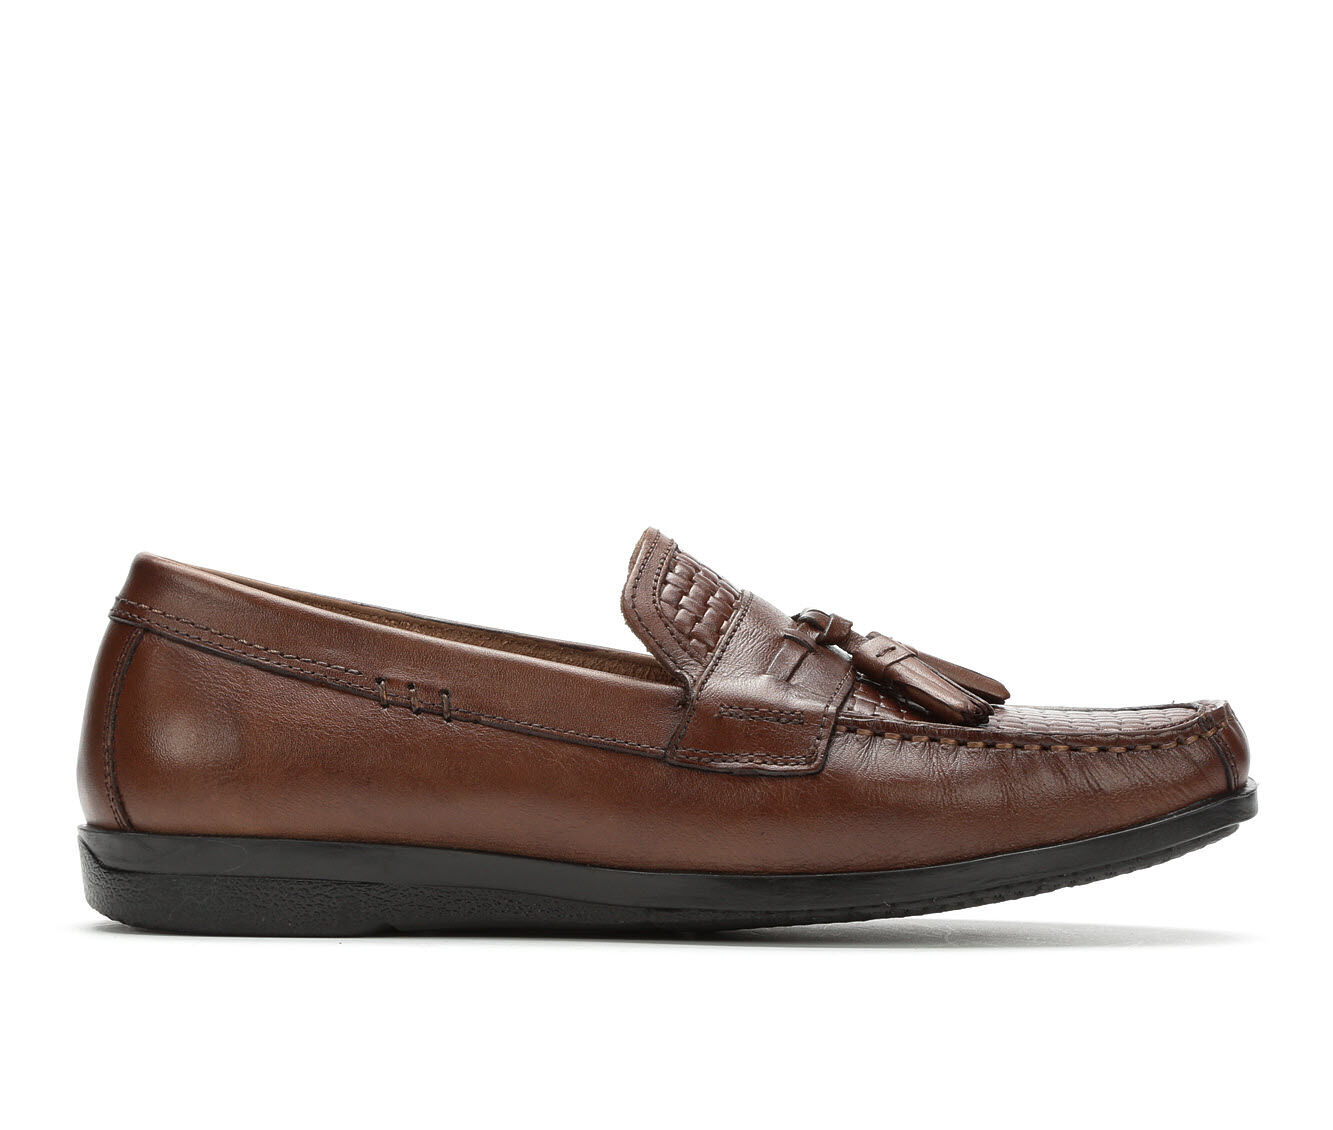 low price for sale Men's Dockers Manheim Slip On Slip-On Leather Loafers outlet 100% authentic free shipping footlocker pictures vVAl0